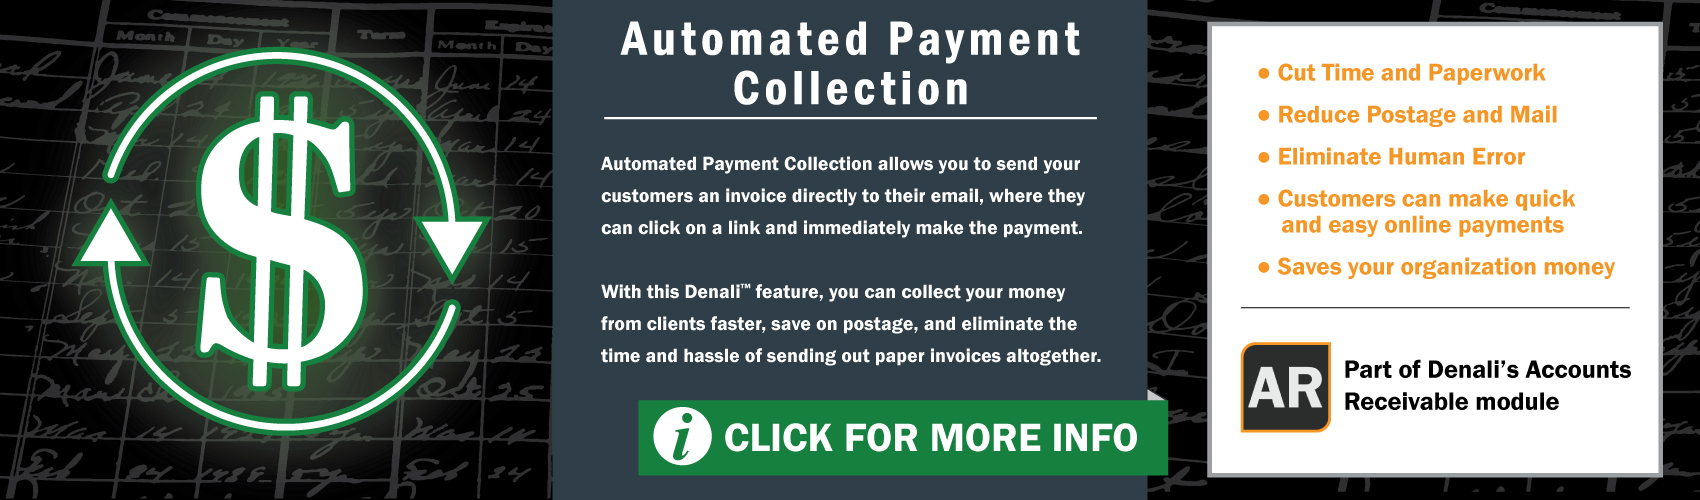 Auto Payment Collection